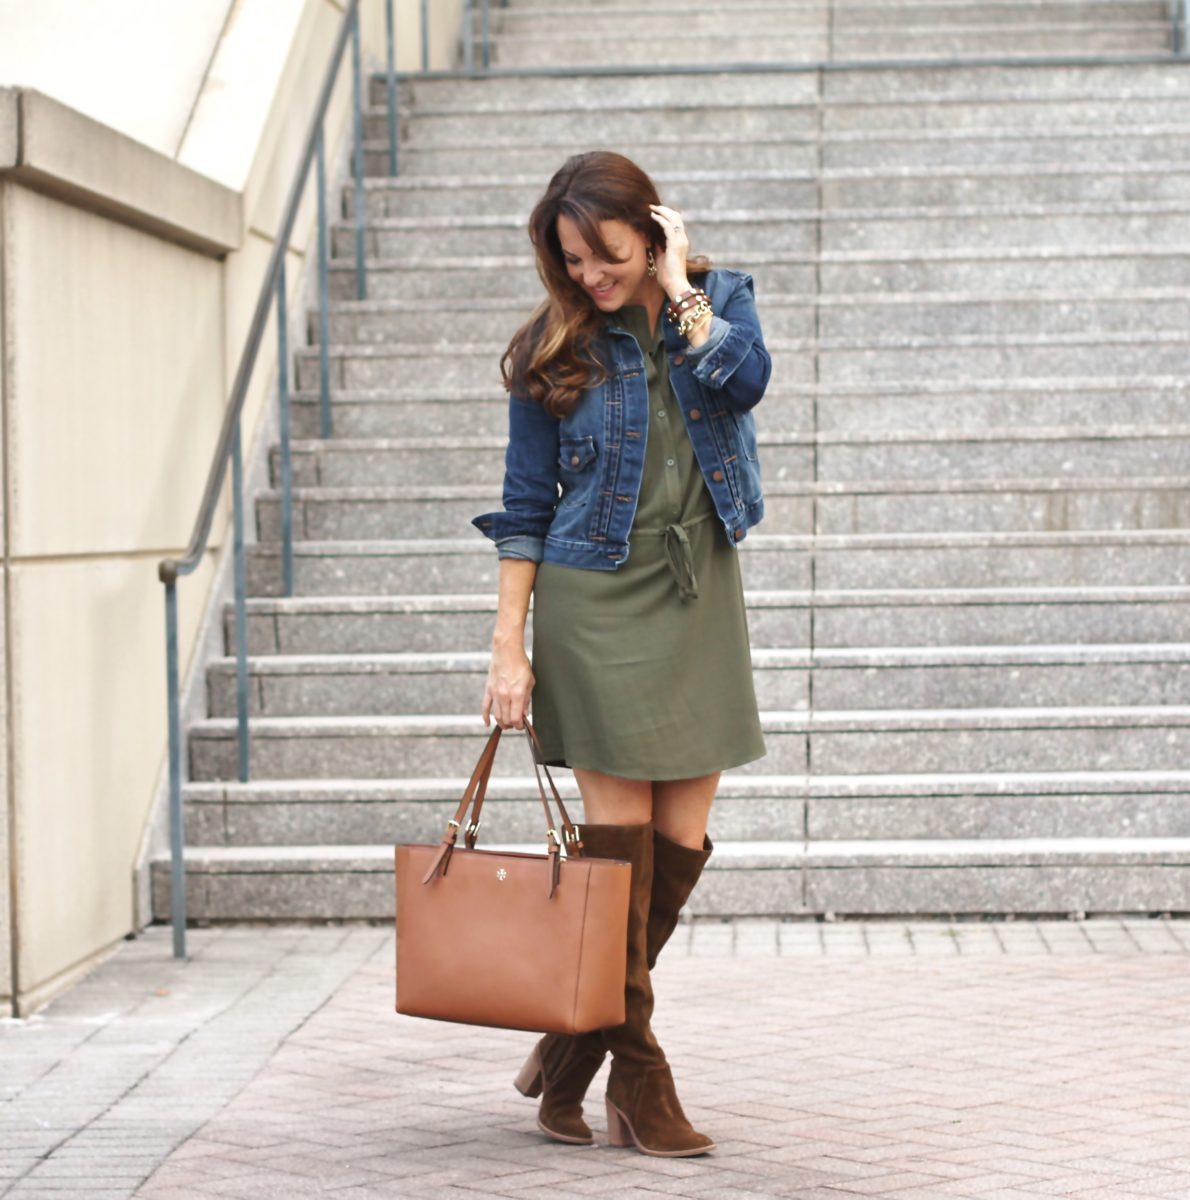 How to wear over the knee boots with a dress for fall.